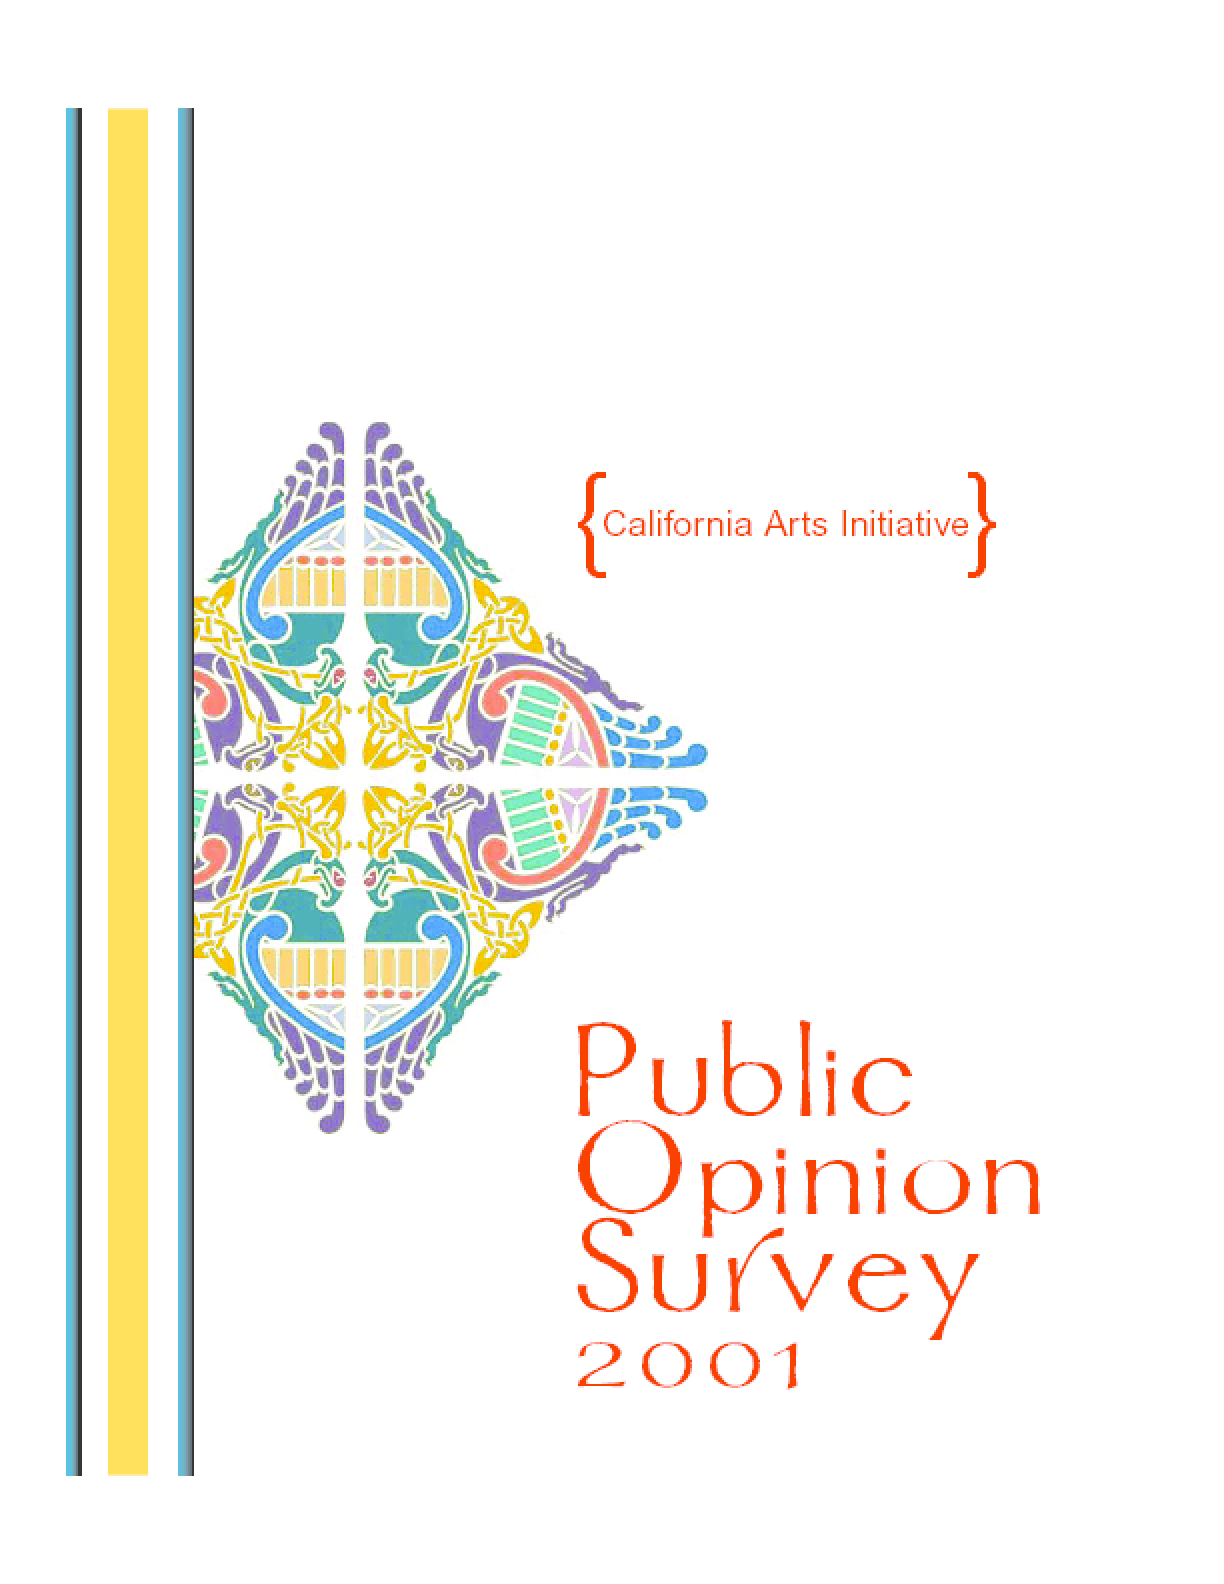 2001 Public Opinion Survey